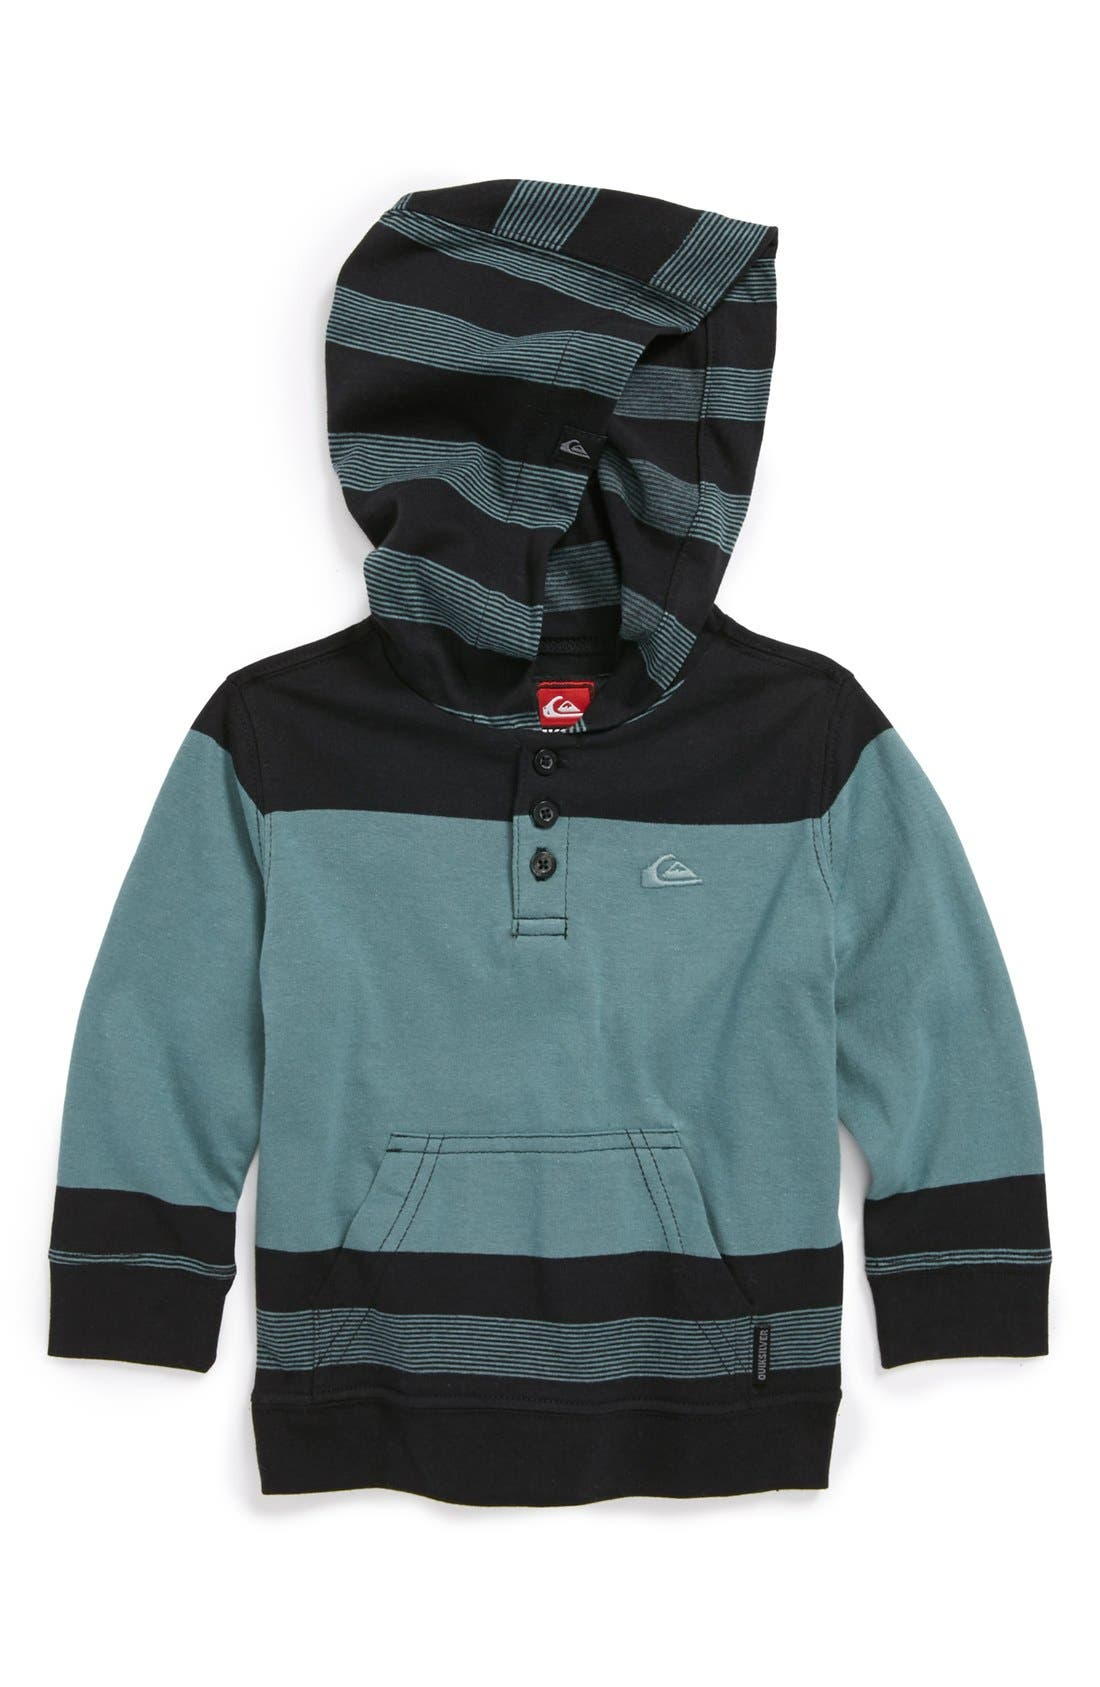 Alternate Image 1 Selected - Quiksilver 'Sand Dollar' Henley Hooded Sweater (Baby Boys)